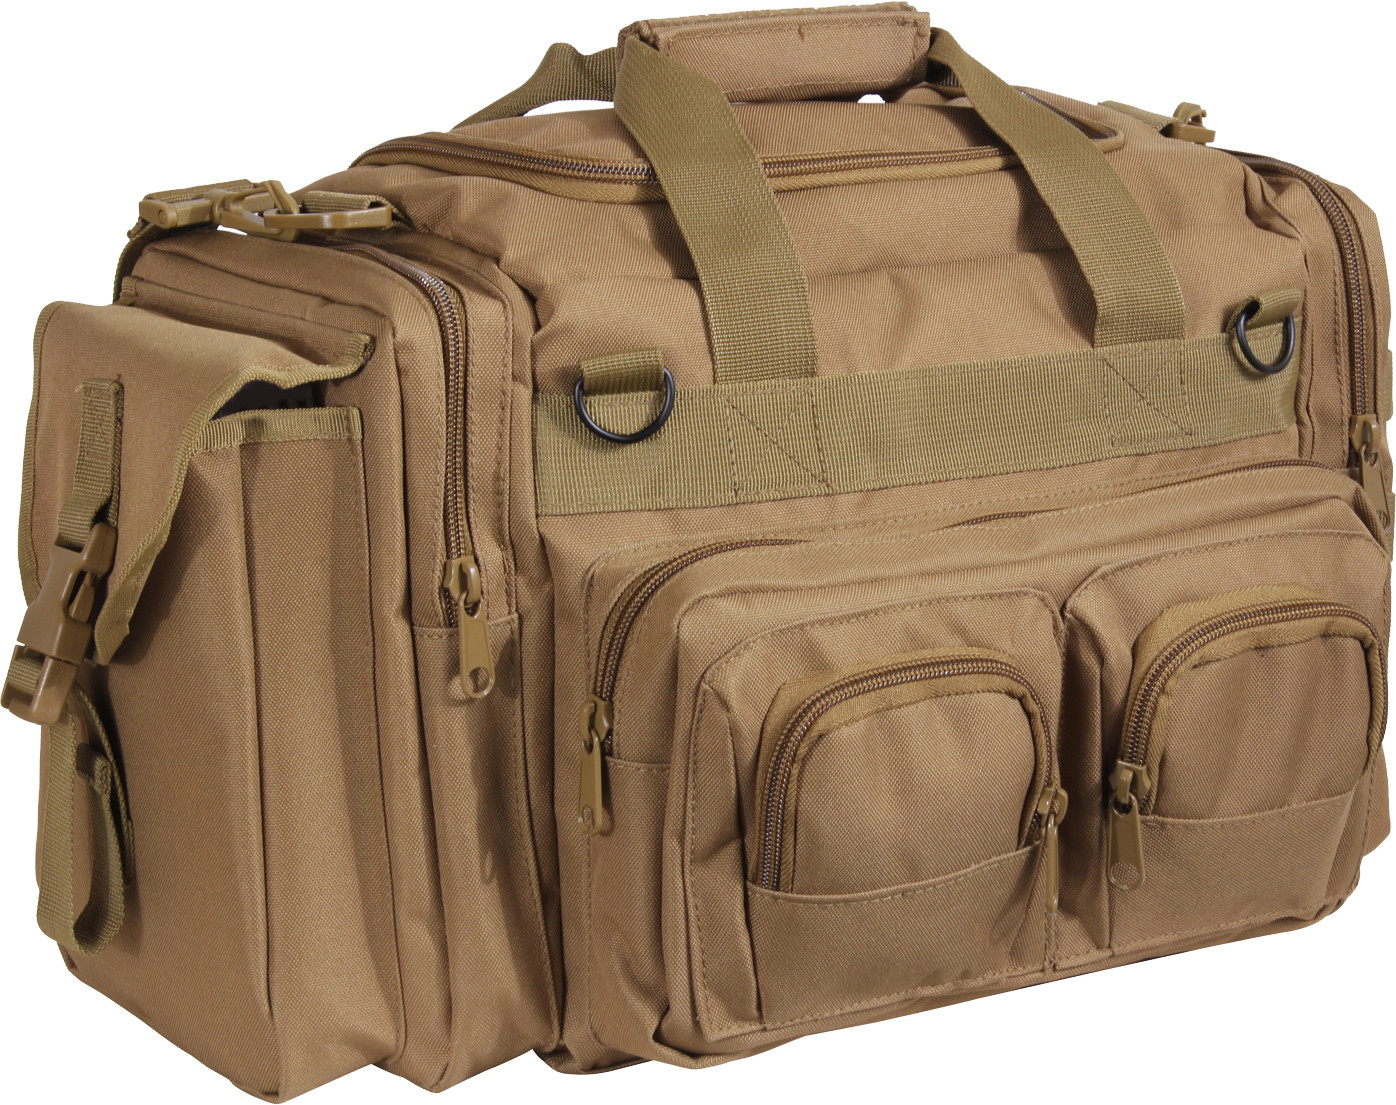 More Views. Coyote Brown Military Tactical Concealed Carry Bag a1110e49899